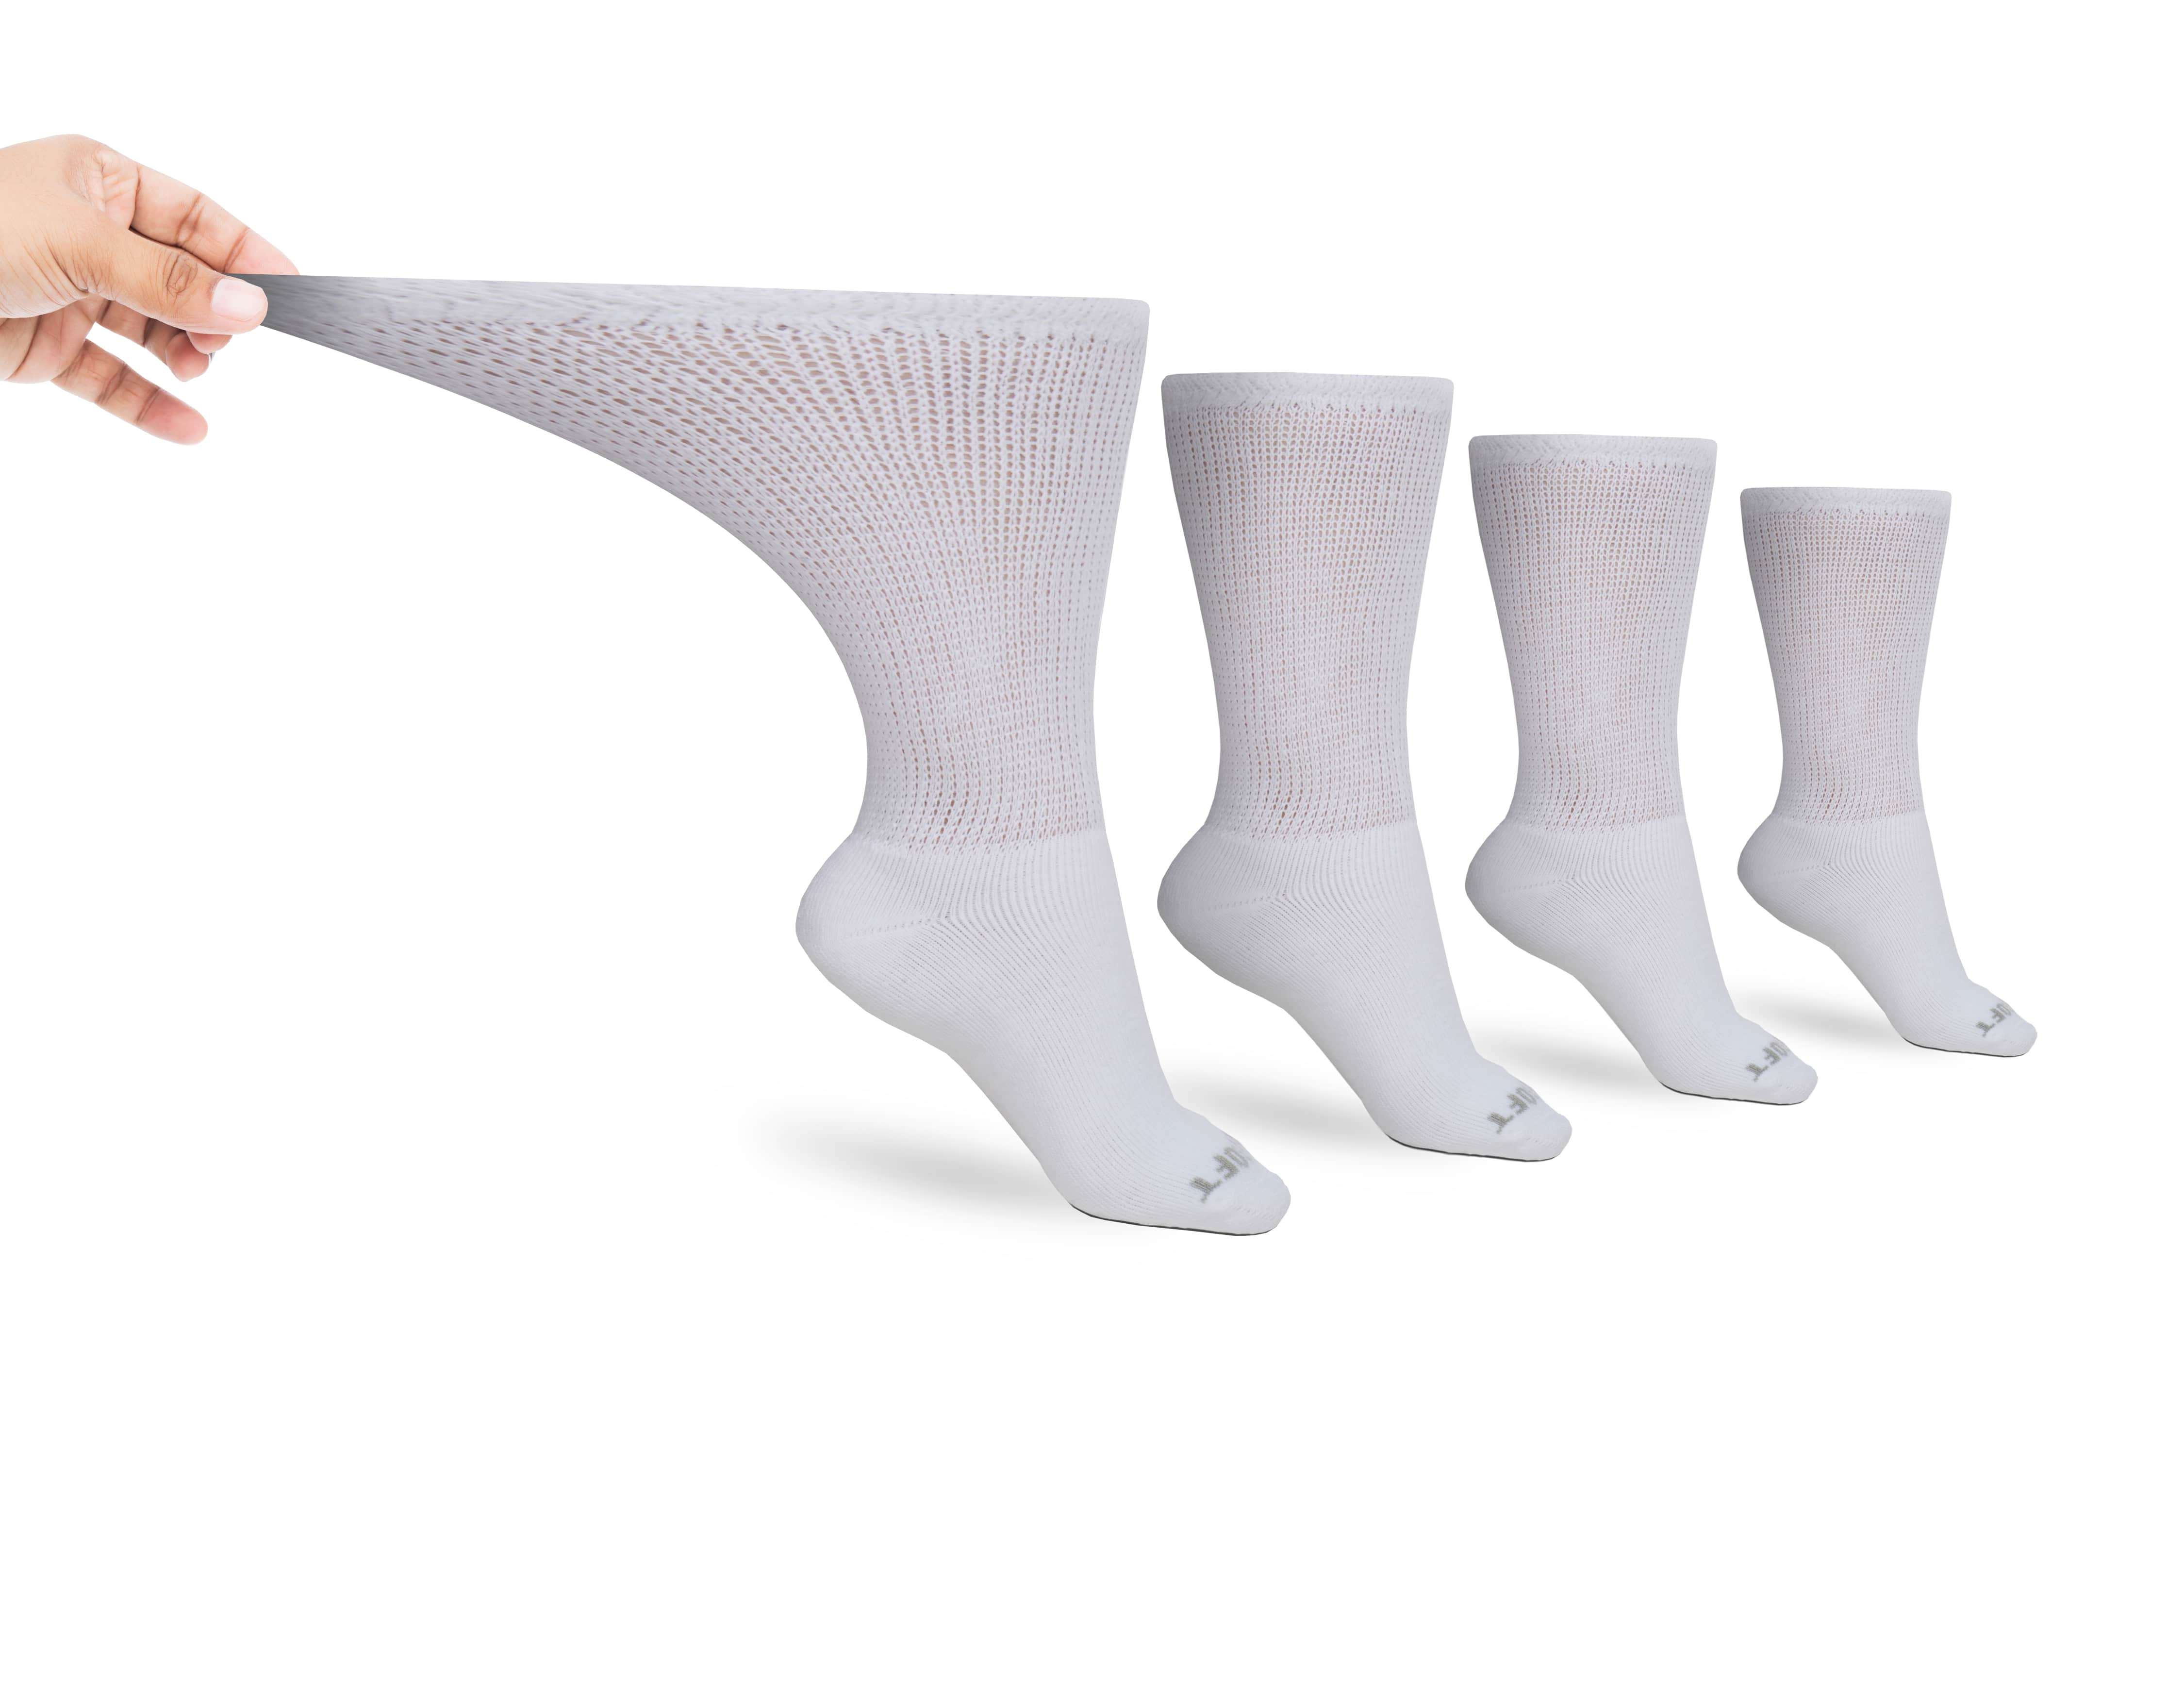 Men's Ultra-Soft Upper Calf Diabetic Socks (4 Pair)